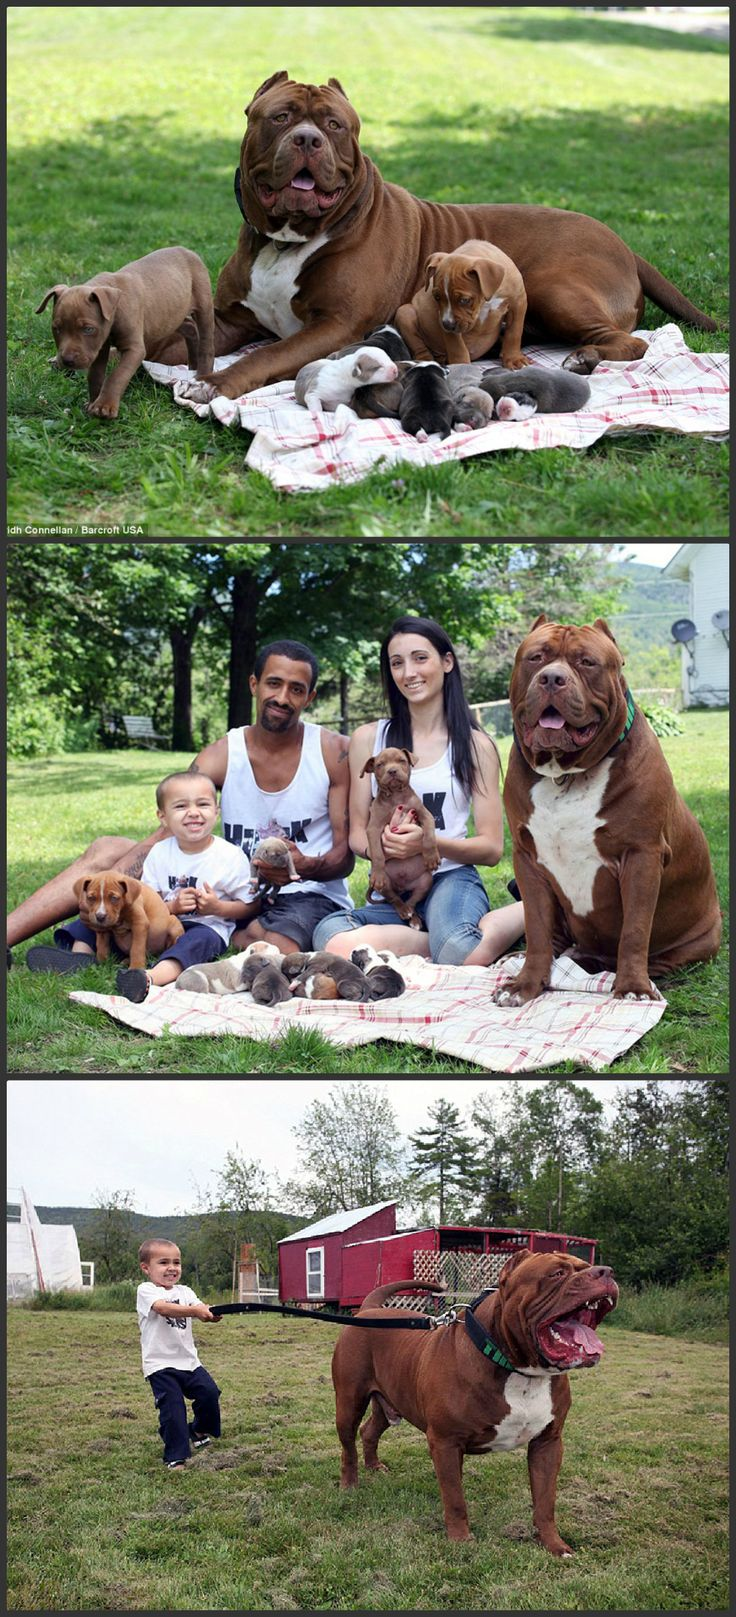 World's Largest Pitbull, Hulk, Fathers Eight Adorable Puppies Worth Half a Million Dollars!